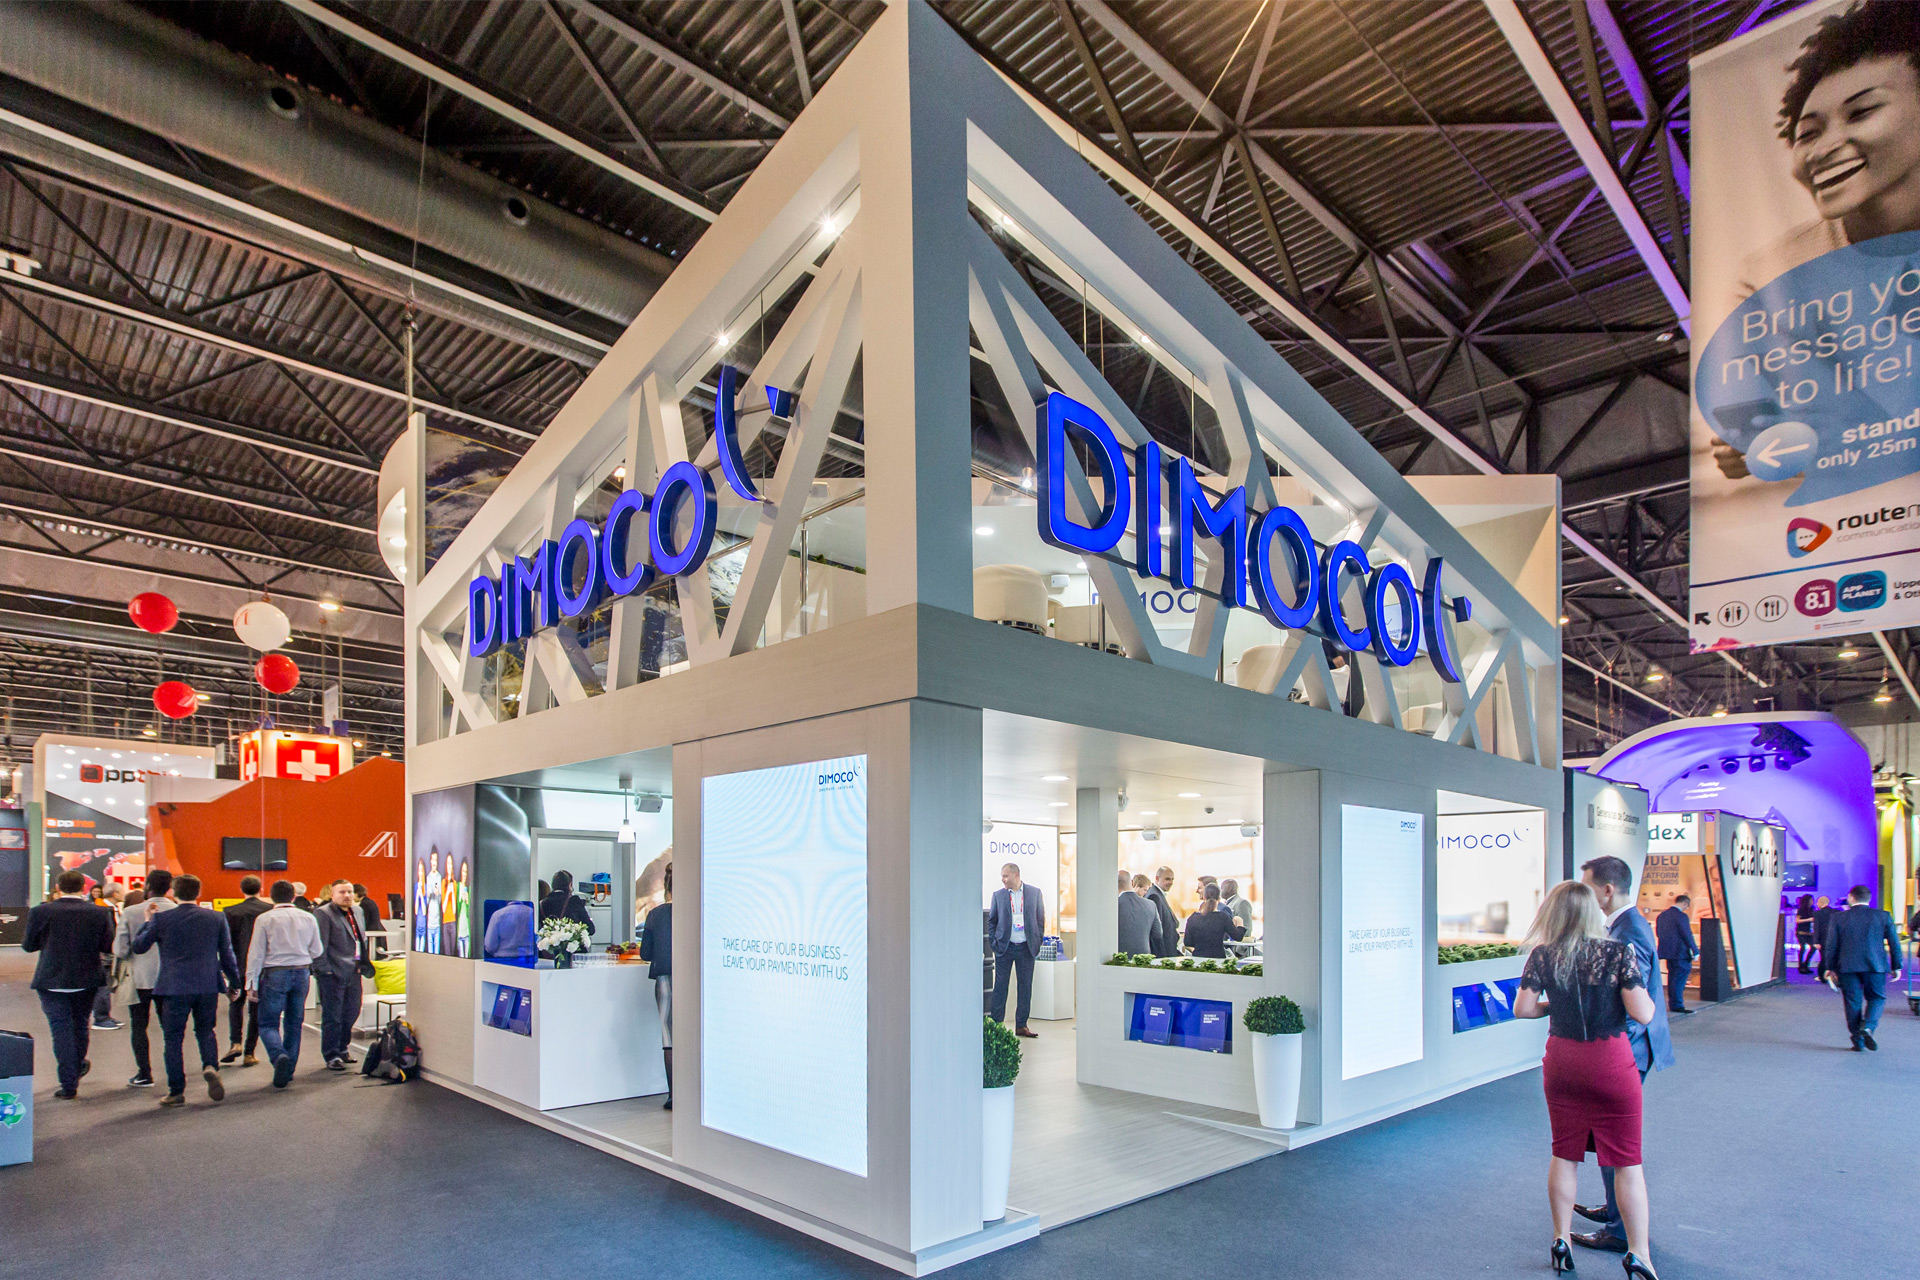 Dimoco mwc barcelona 2017 pro expo exhibition stand for Expo barcelona